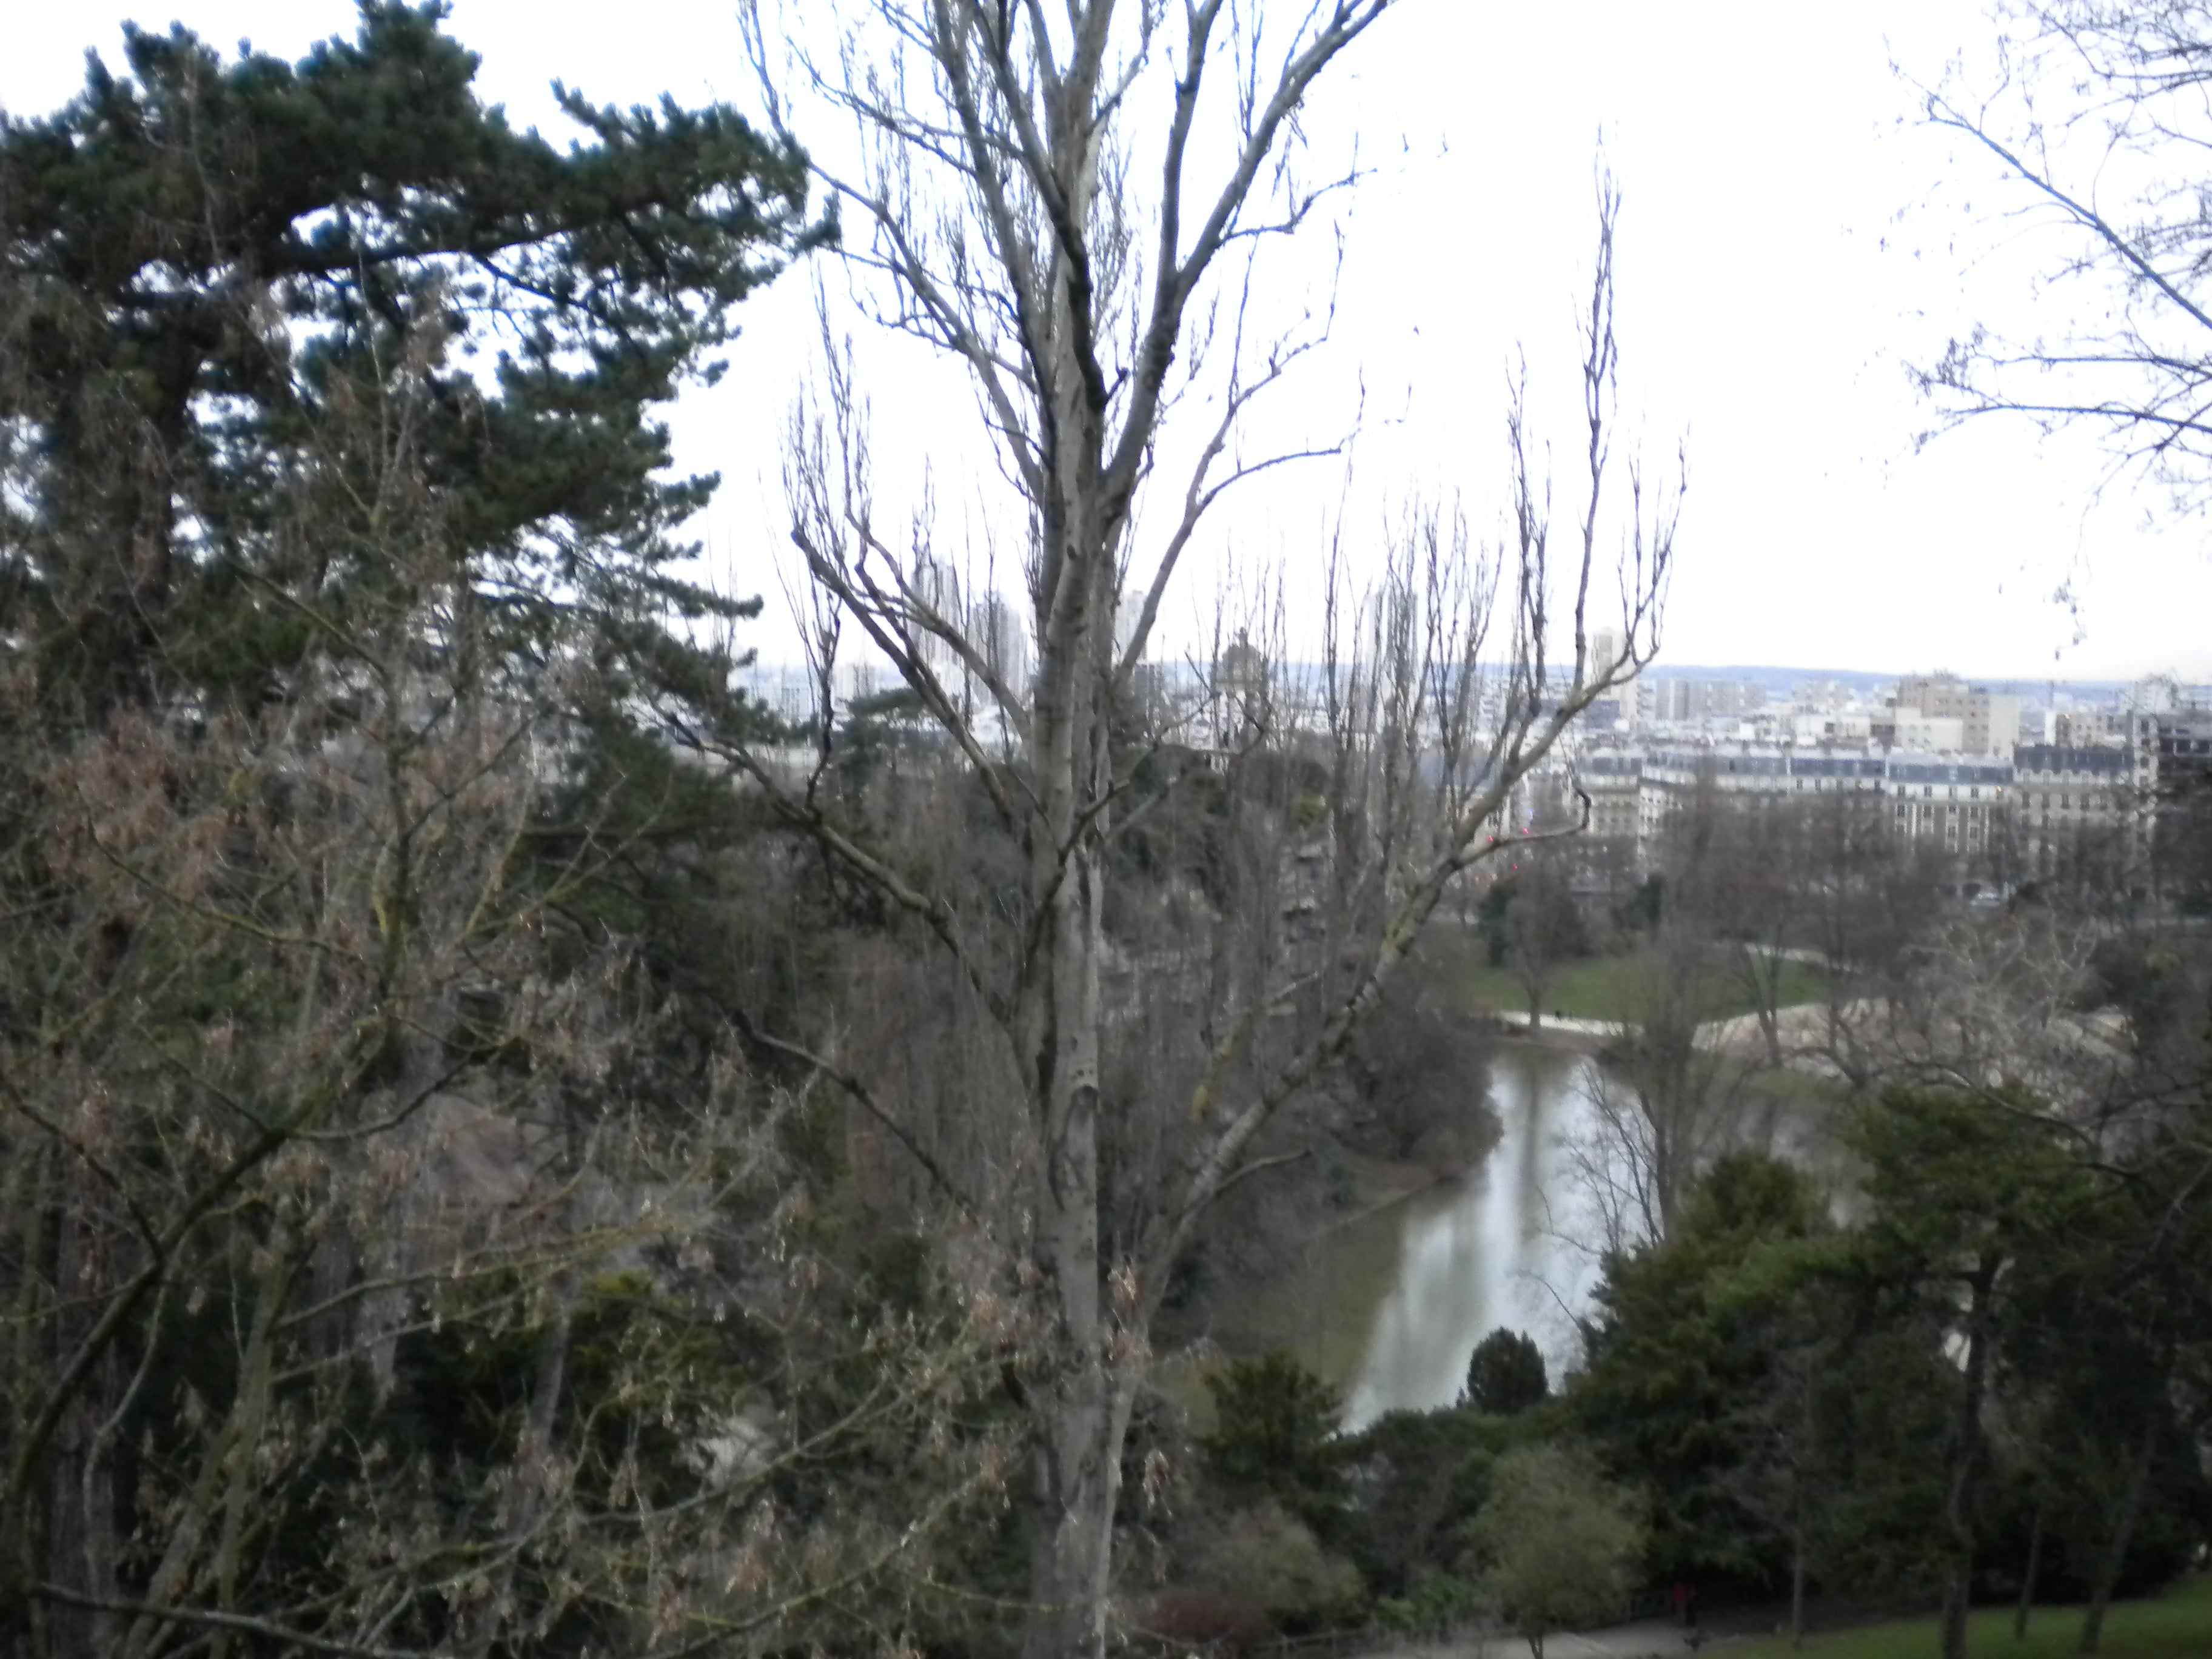 Bosque en Parque Buttes Chaumont